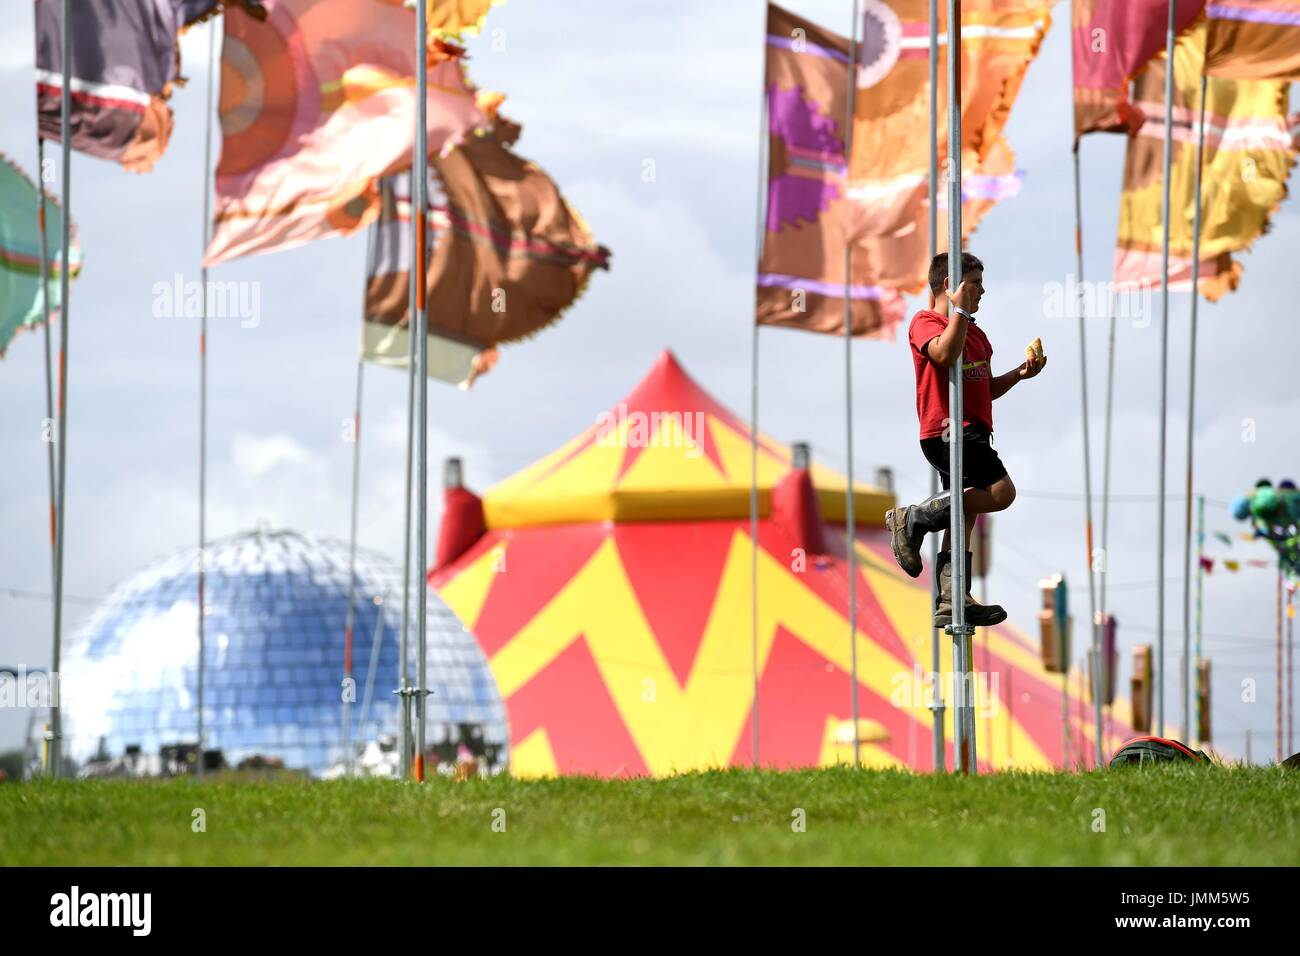 Dorset, UK. 27 juillet, 2017. Camp Bestival ouvre, Dorset, UK Crédit : Finnbarr Webster/Alamy Live News Photo Stock